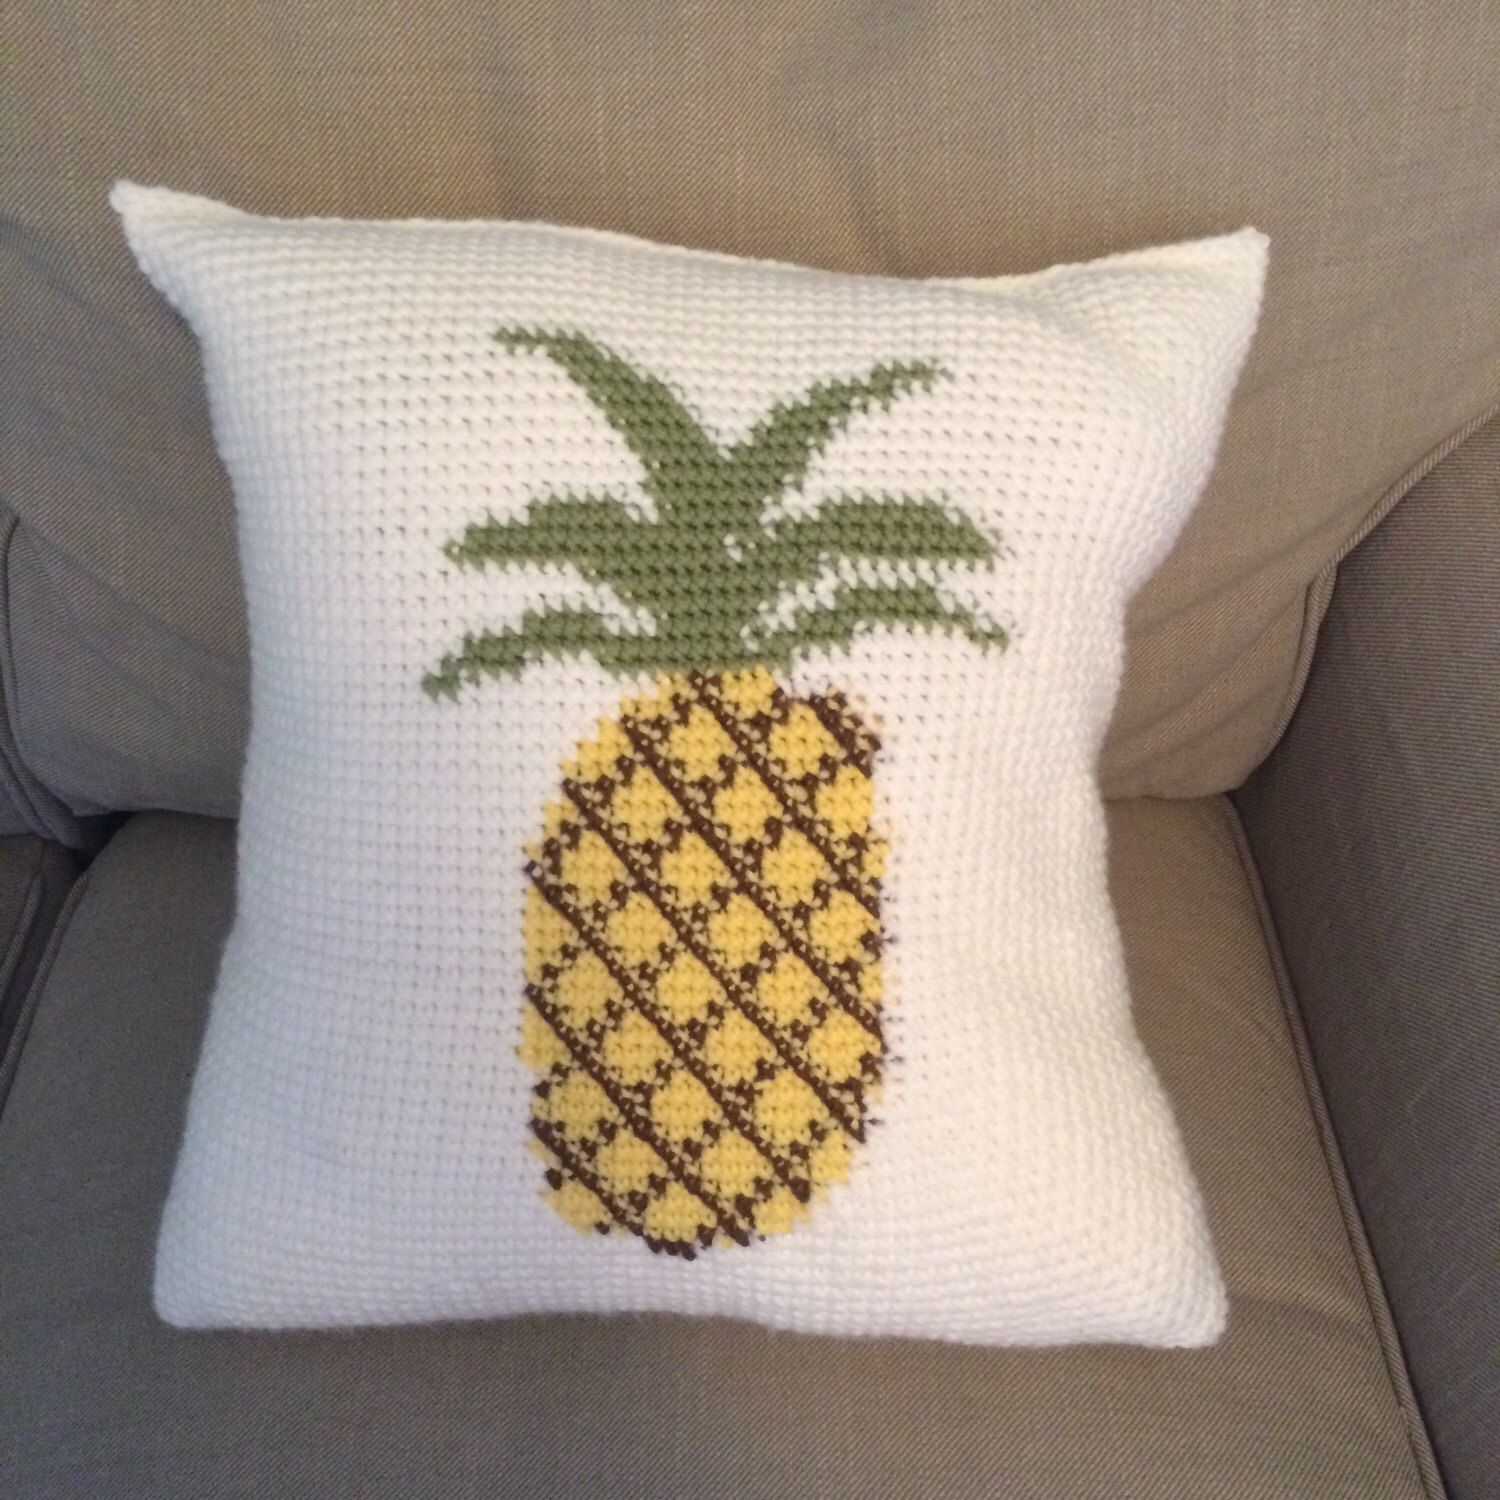 Pineapple Pillow by HannaCatchallCottage on Etsy https://www.etsy.com/listing/268616113/pineapple-pillow